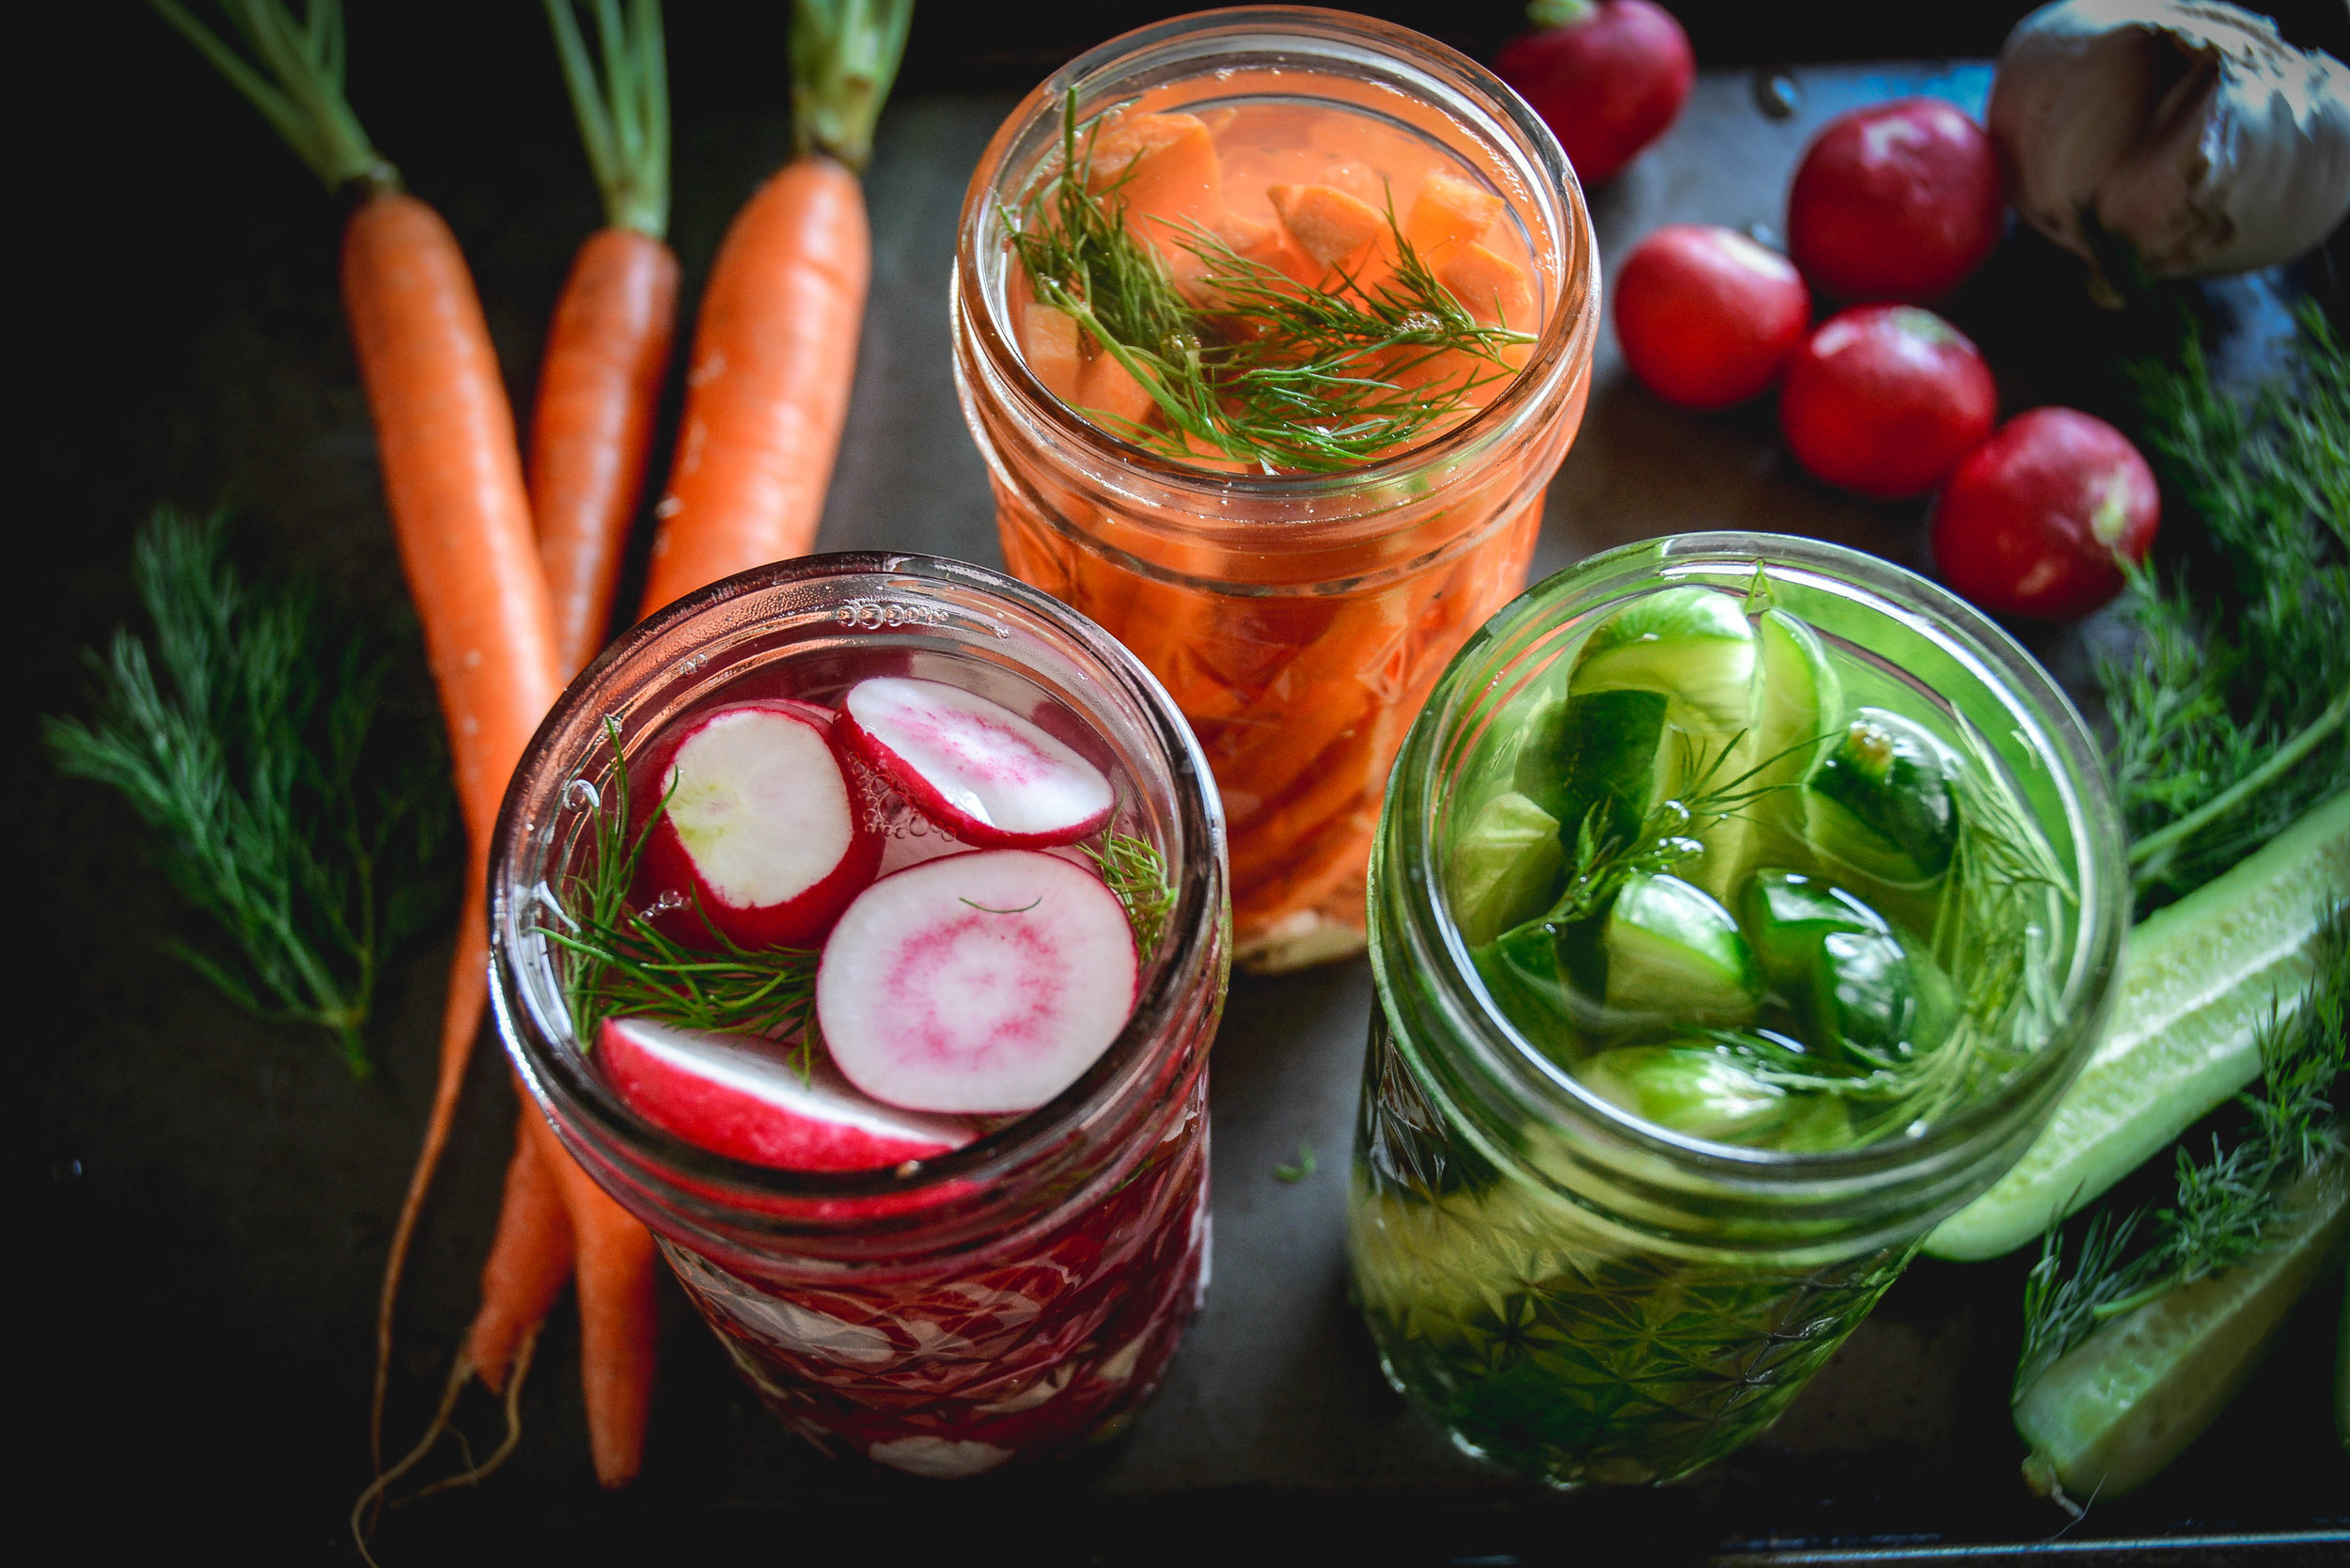 fermented pickles, carrots, and radishes